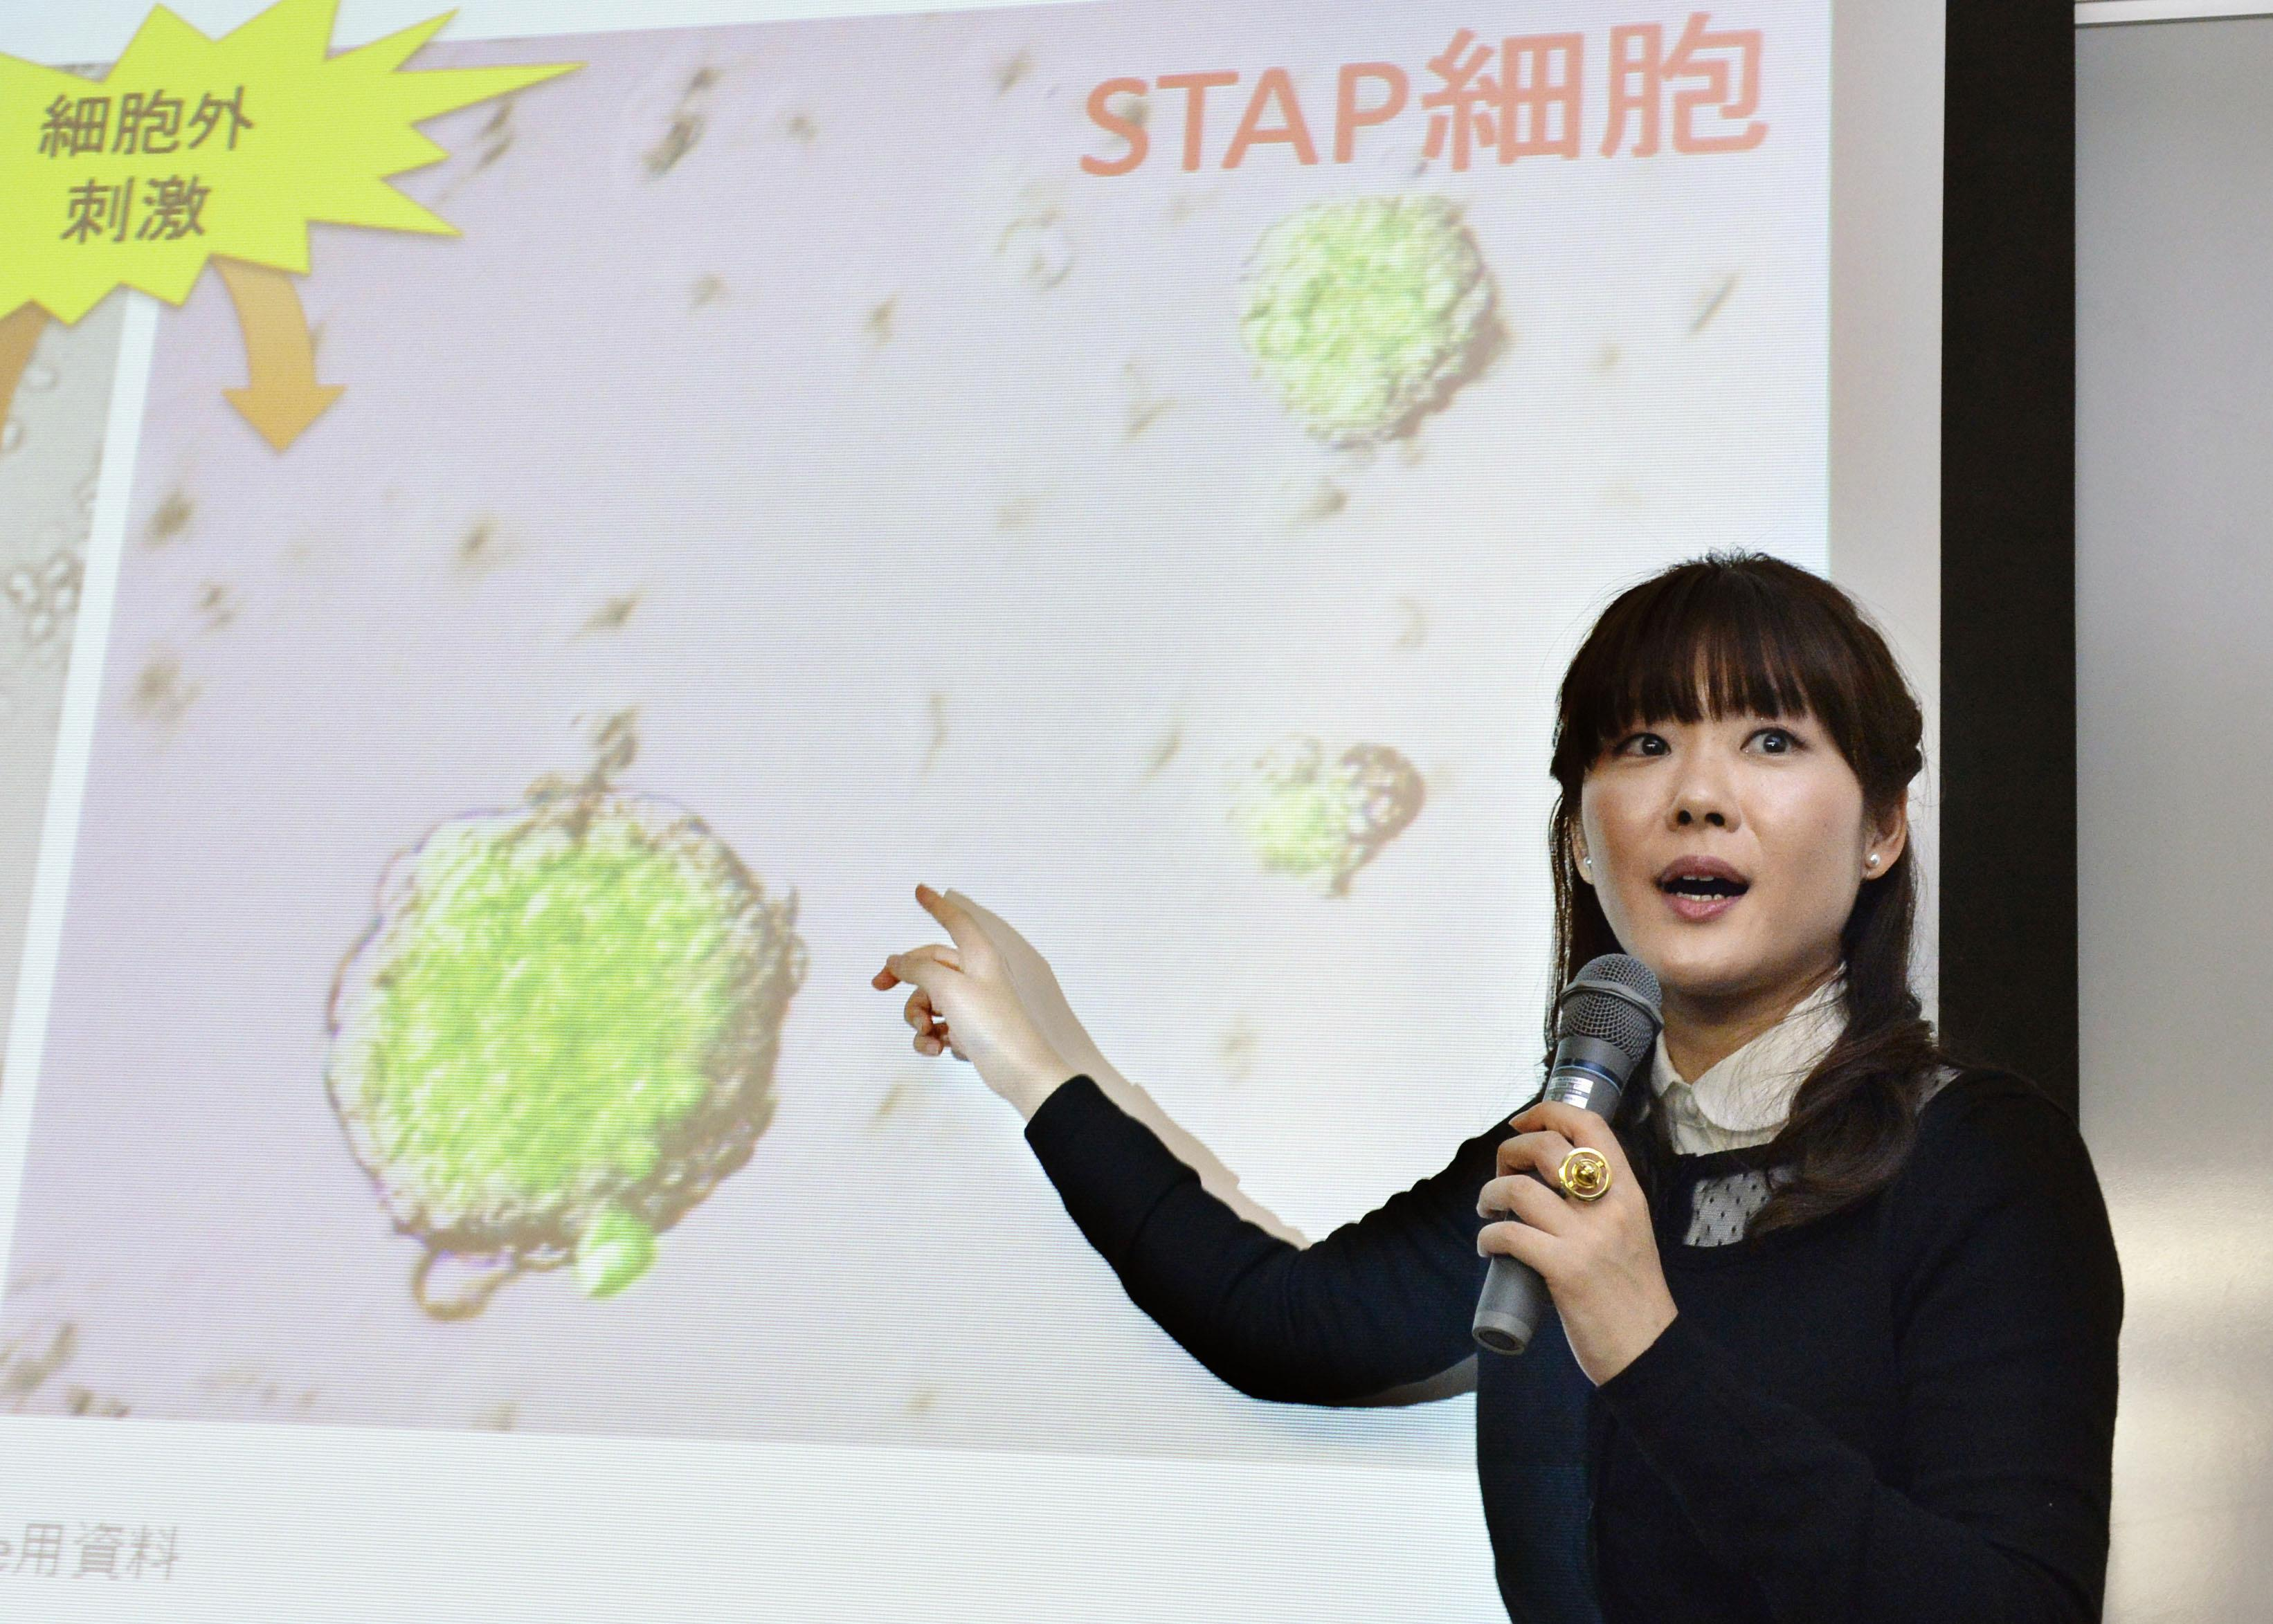 Japan scientist quits as cell research discredited